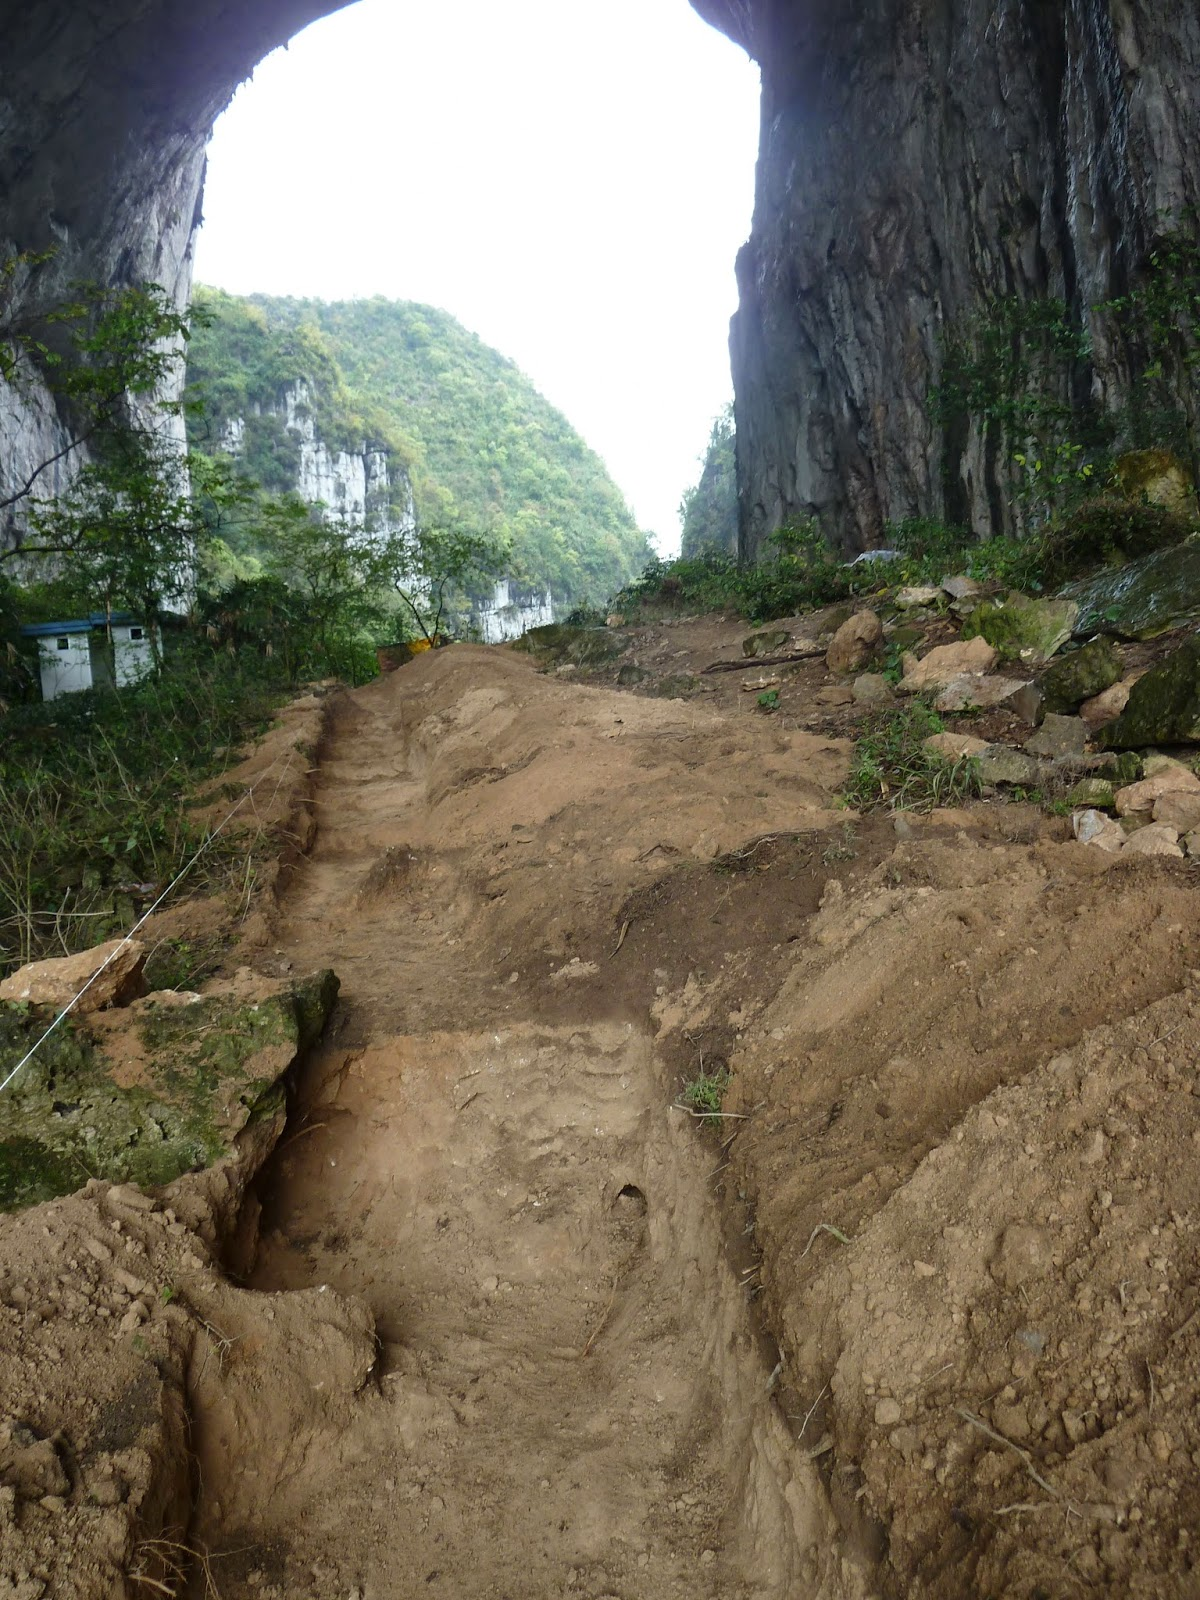 Getu in 2013. Concrete paths and excavation cut through the cave.